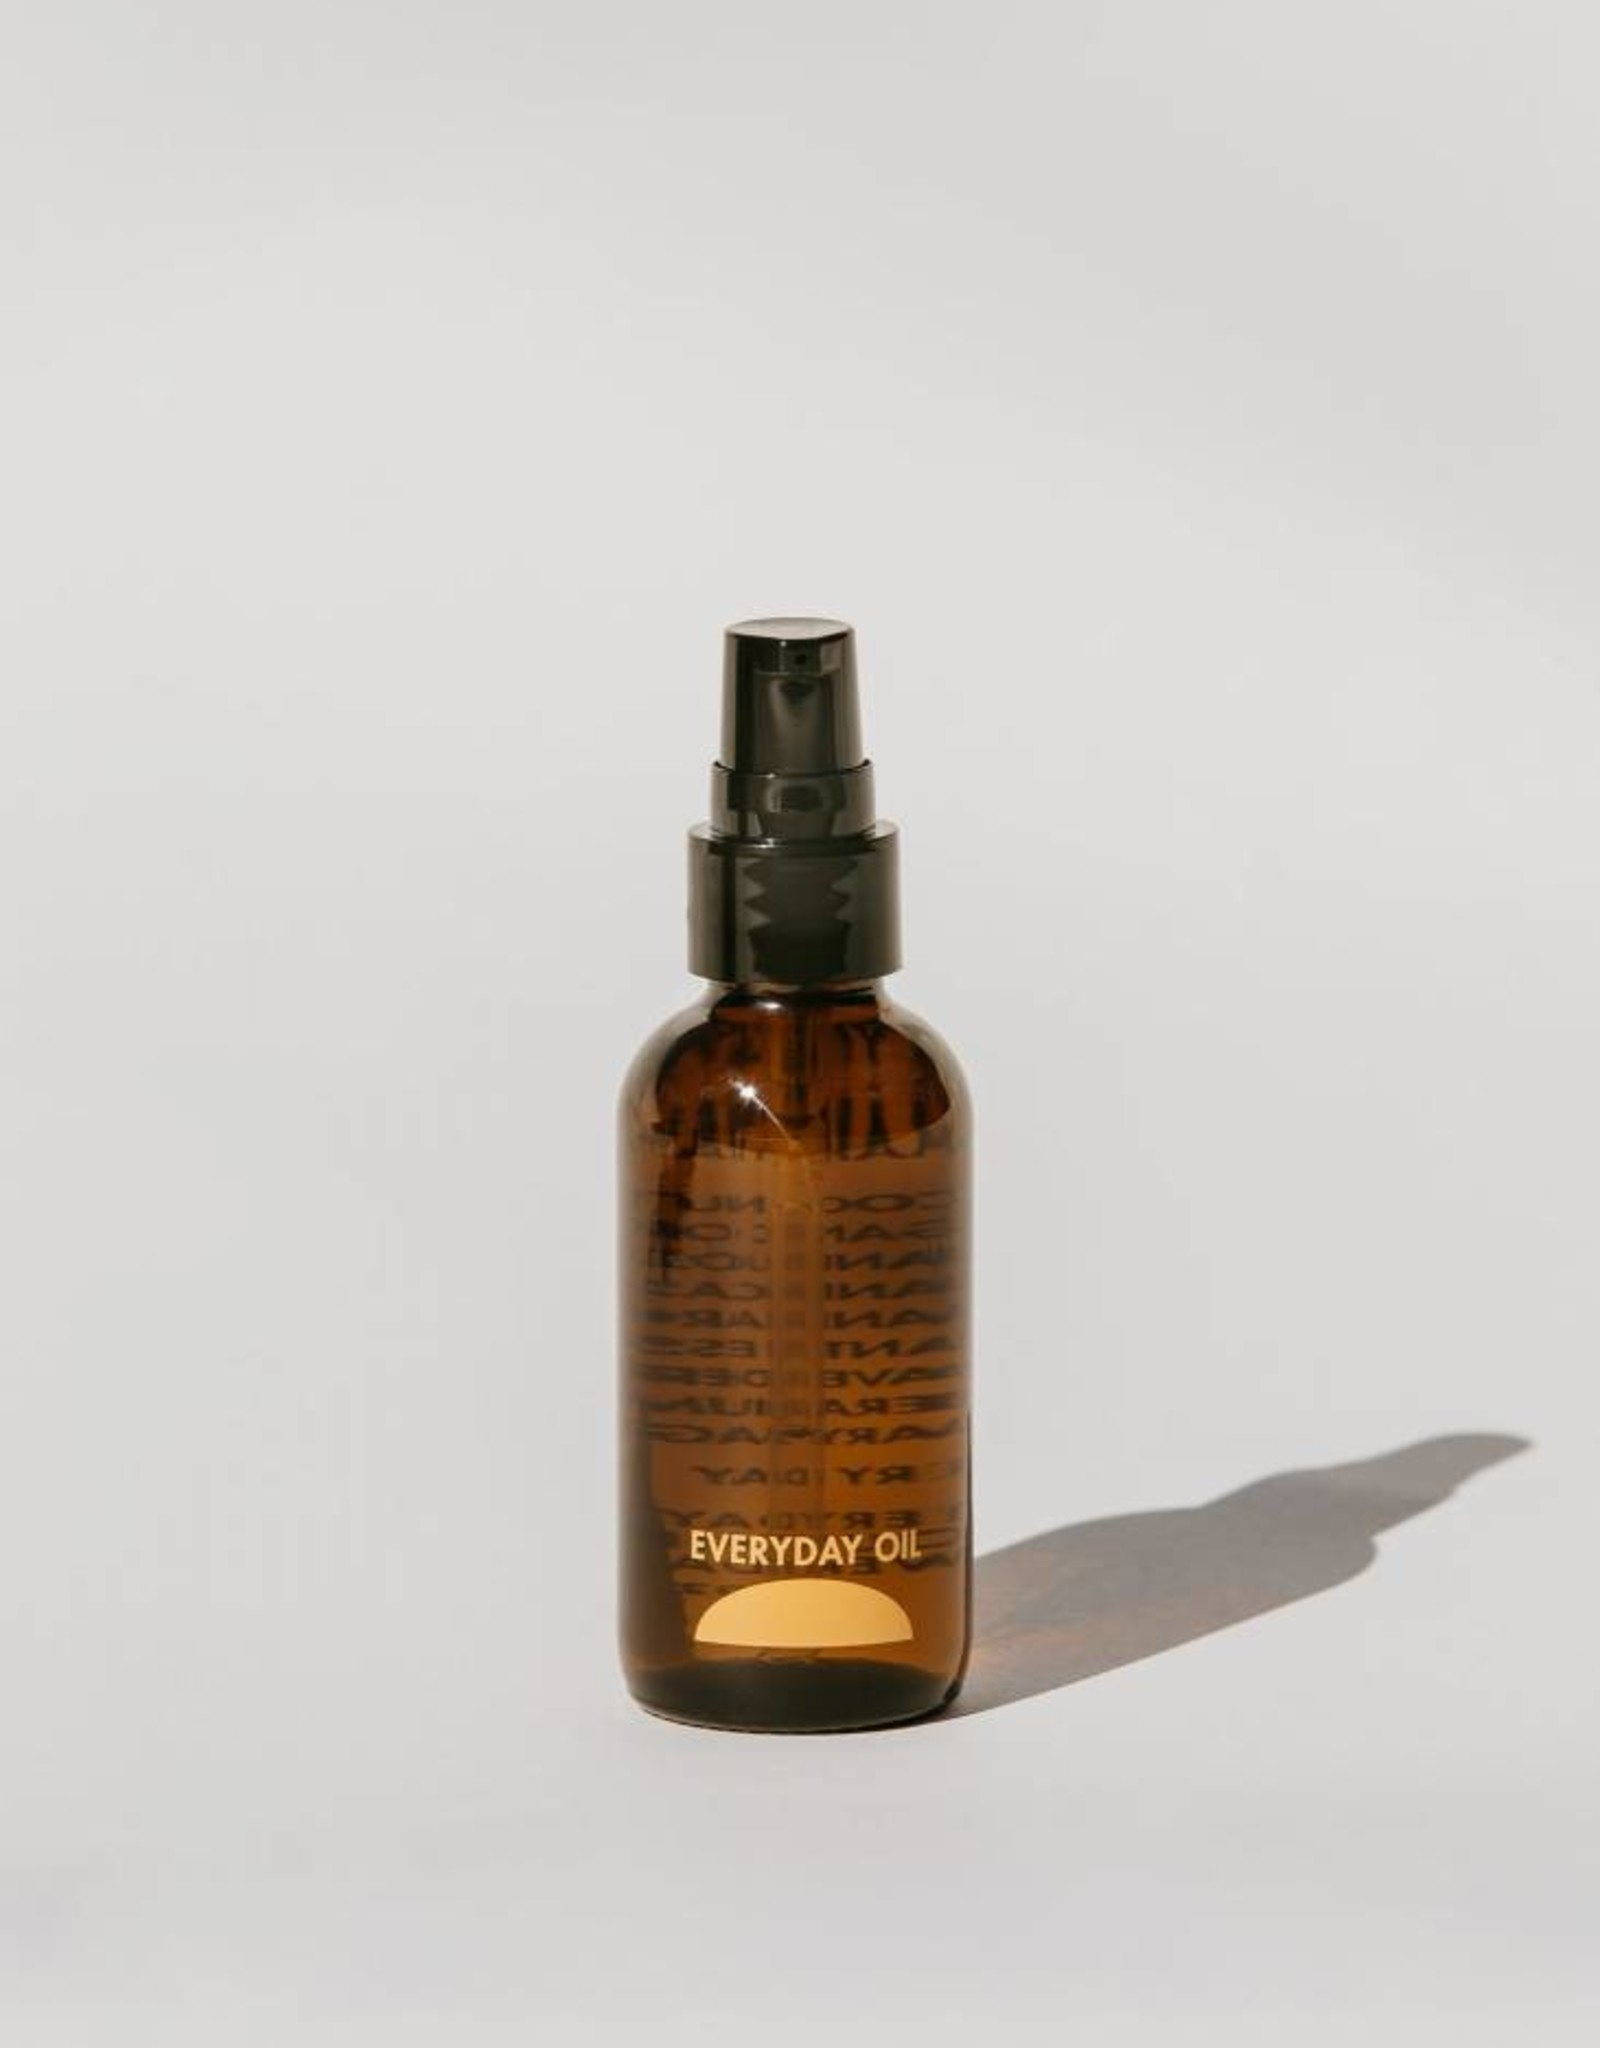 Everyday Oil - Mainstay Blend - 2 oz.